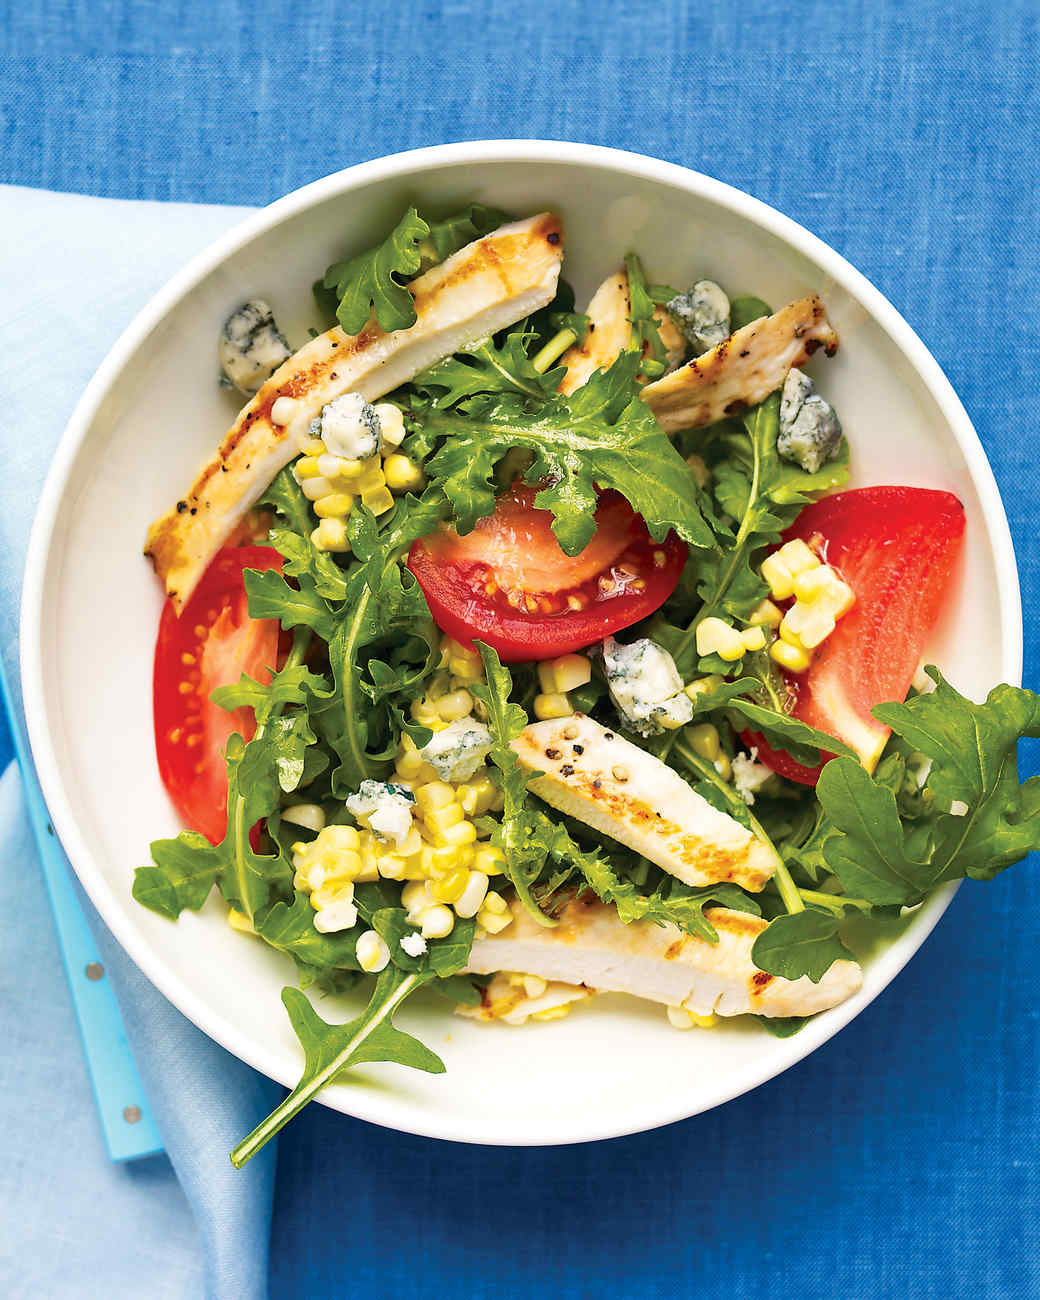 Arugula Salad with Grilled Chicken, Corn, Tomatoes, and Blue Cheese